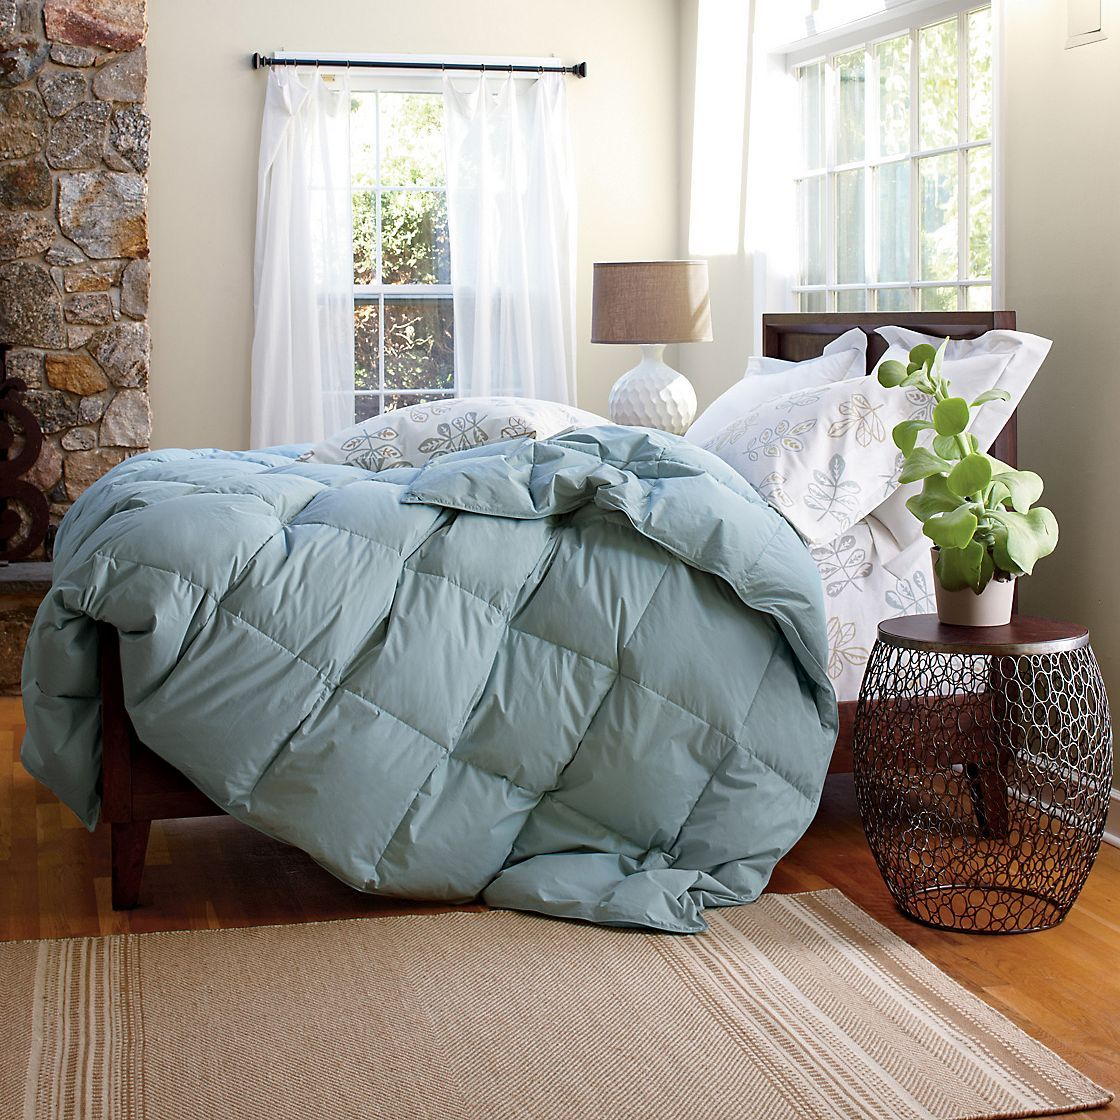 Schlafzimmerfarben White Bay Supersize Or Oversized Goose Down Comforter